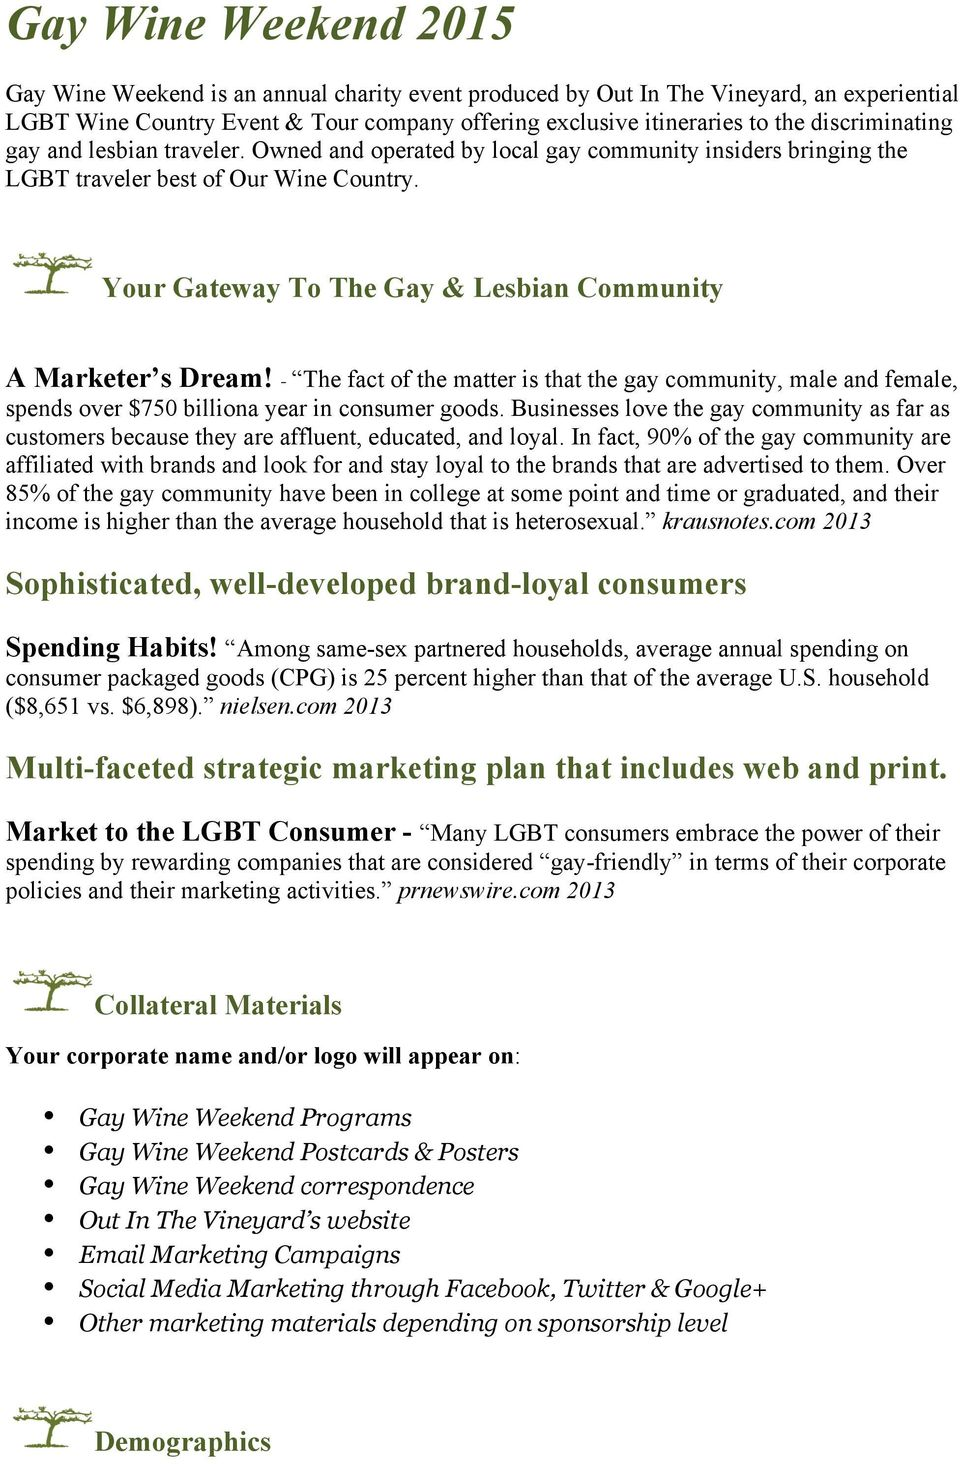 Your Gateway To The Gay & Lesbian Community A Marketer s Dream! - The fact of the matter is that the gay community, male and female, spends over $750 billiona year in consumer goods.